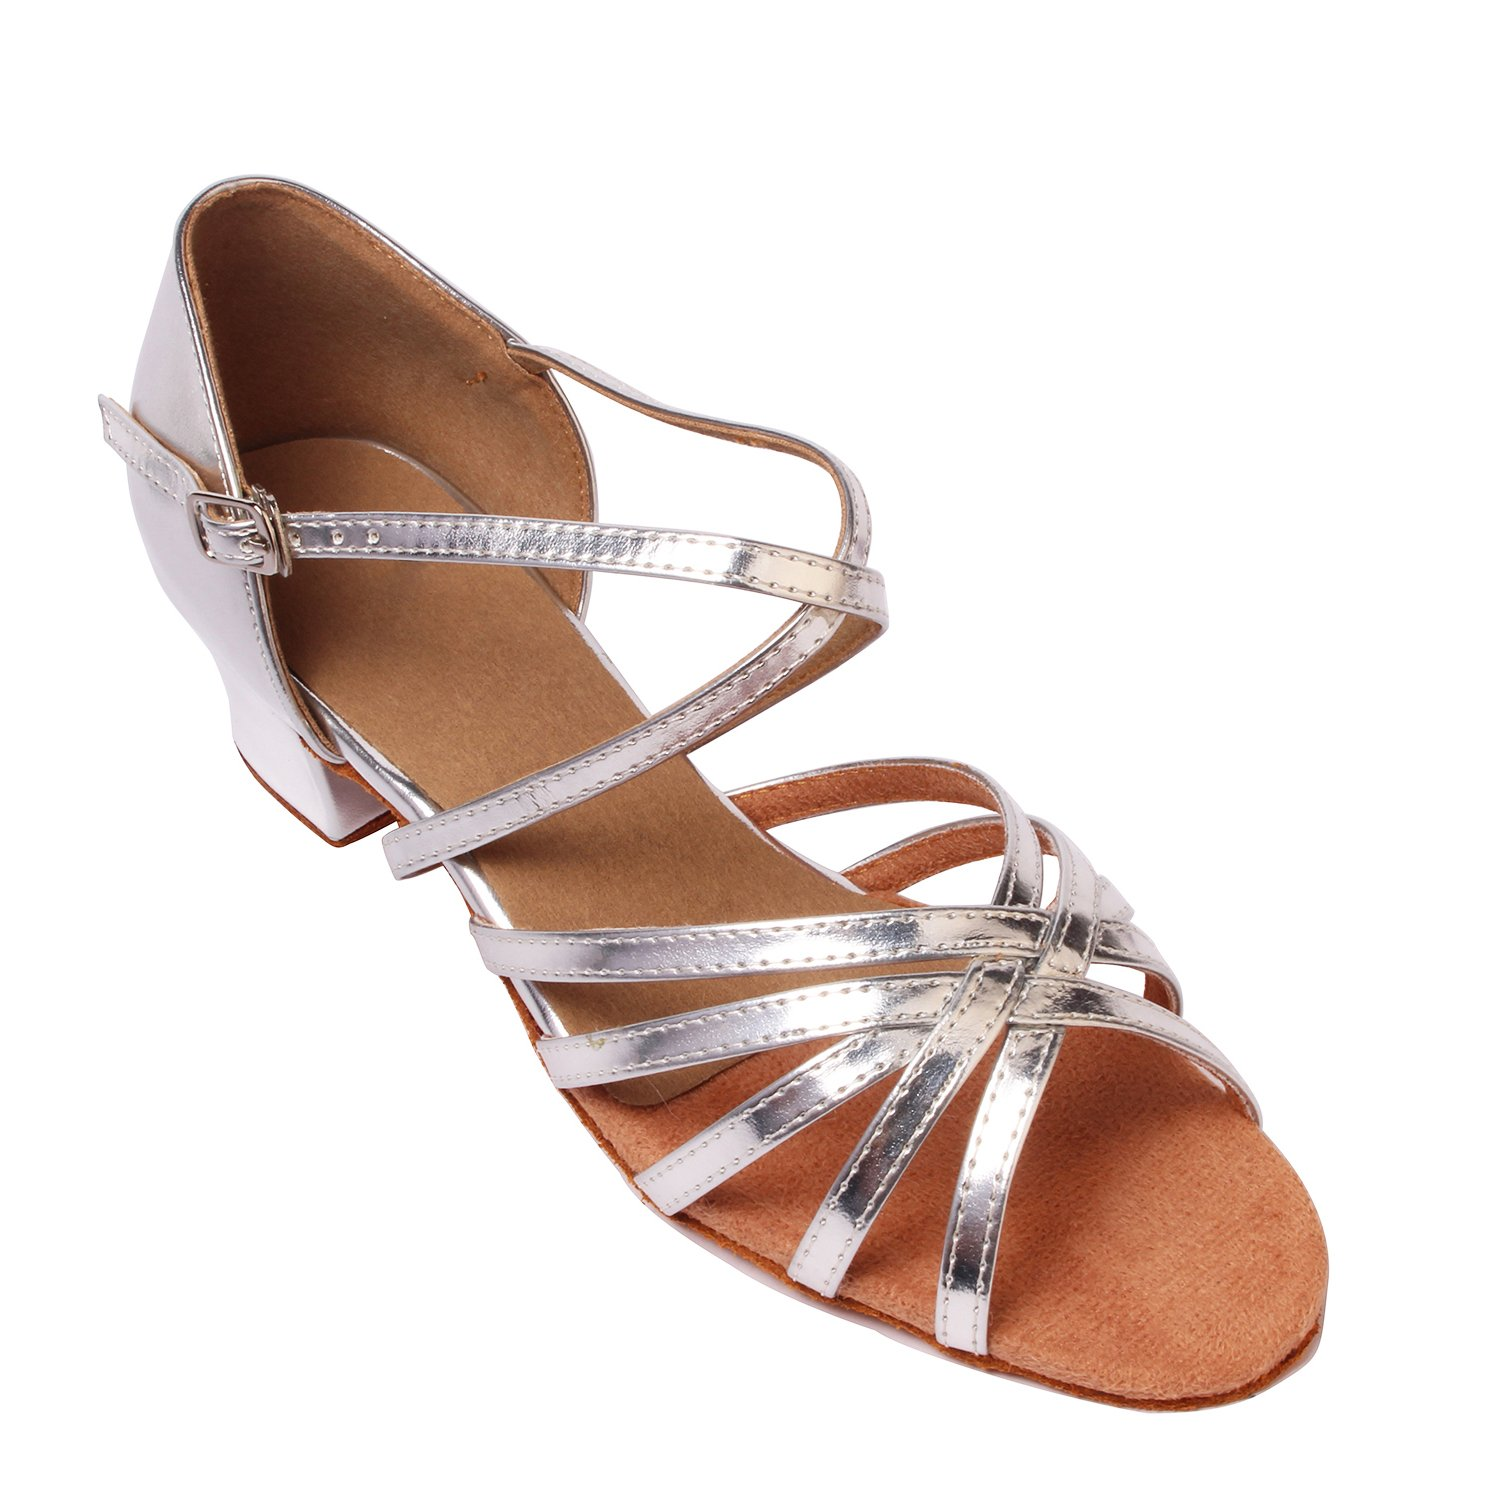 LOVELY BEAUTY Lady's Ballroom Dance Shoes for Chacha B0777P7Q89 Latin Salsa Rumba Practice B0777P7Q89 Chacha 11 B(M) US|Silver e02538